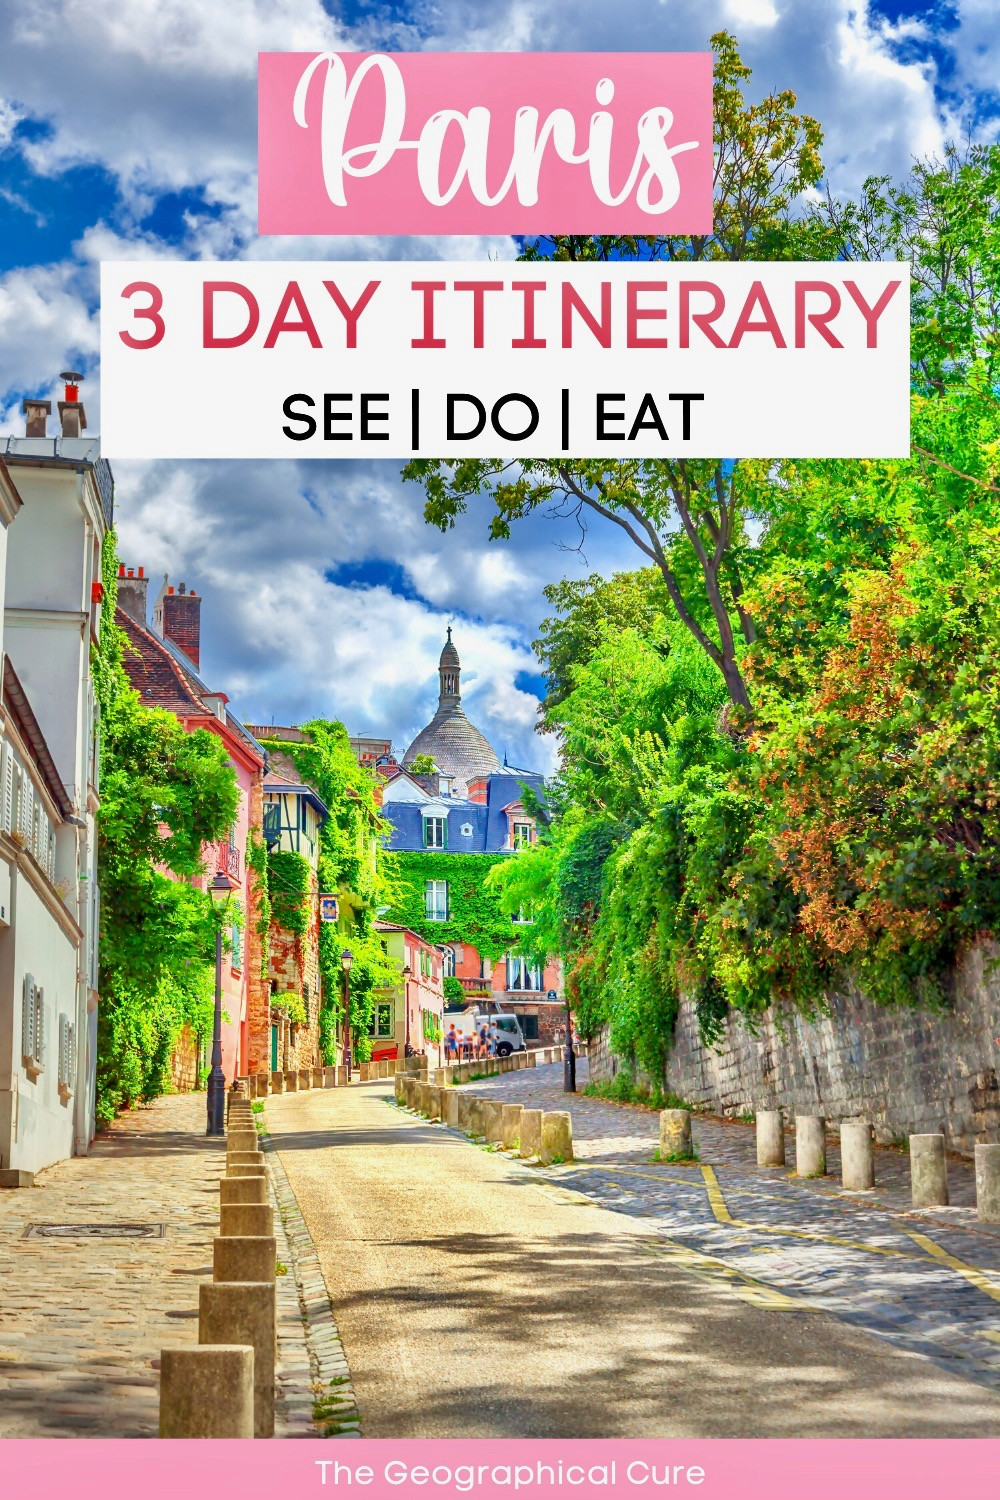 Paris in 3 days itinerary